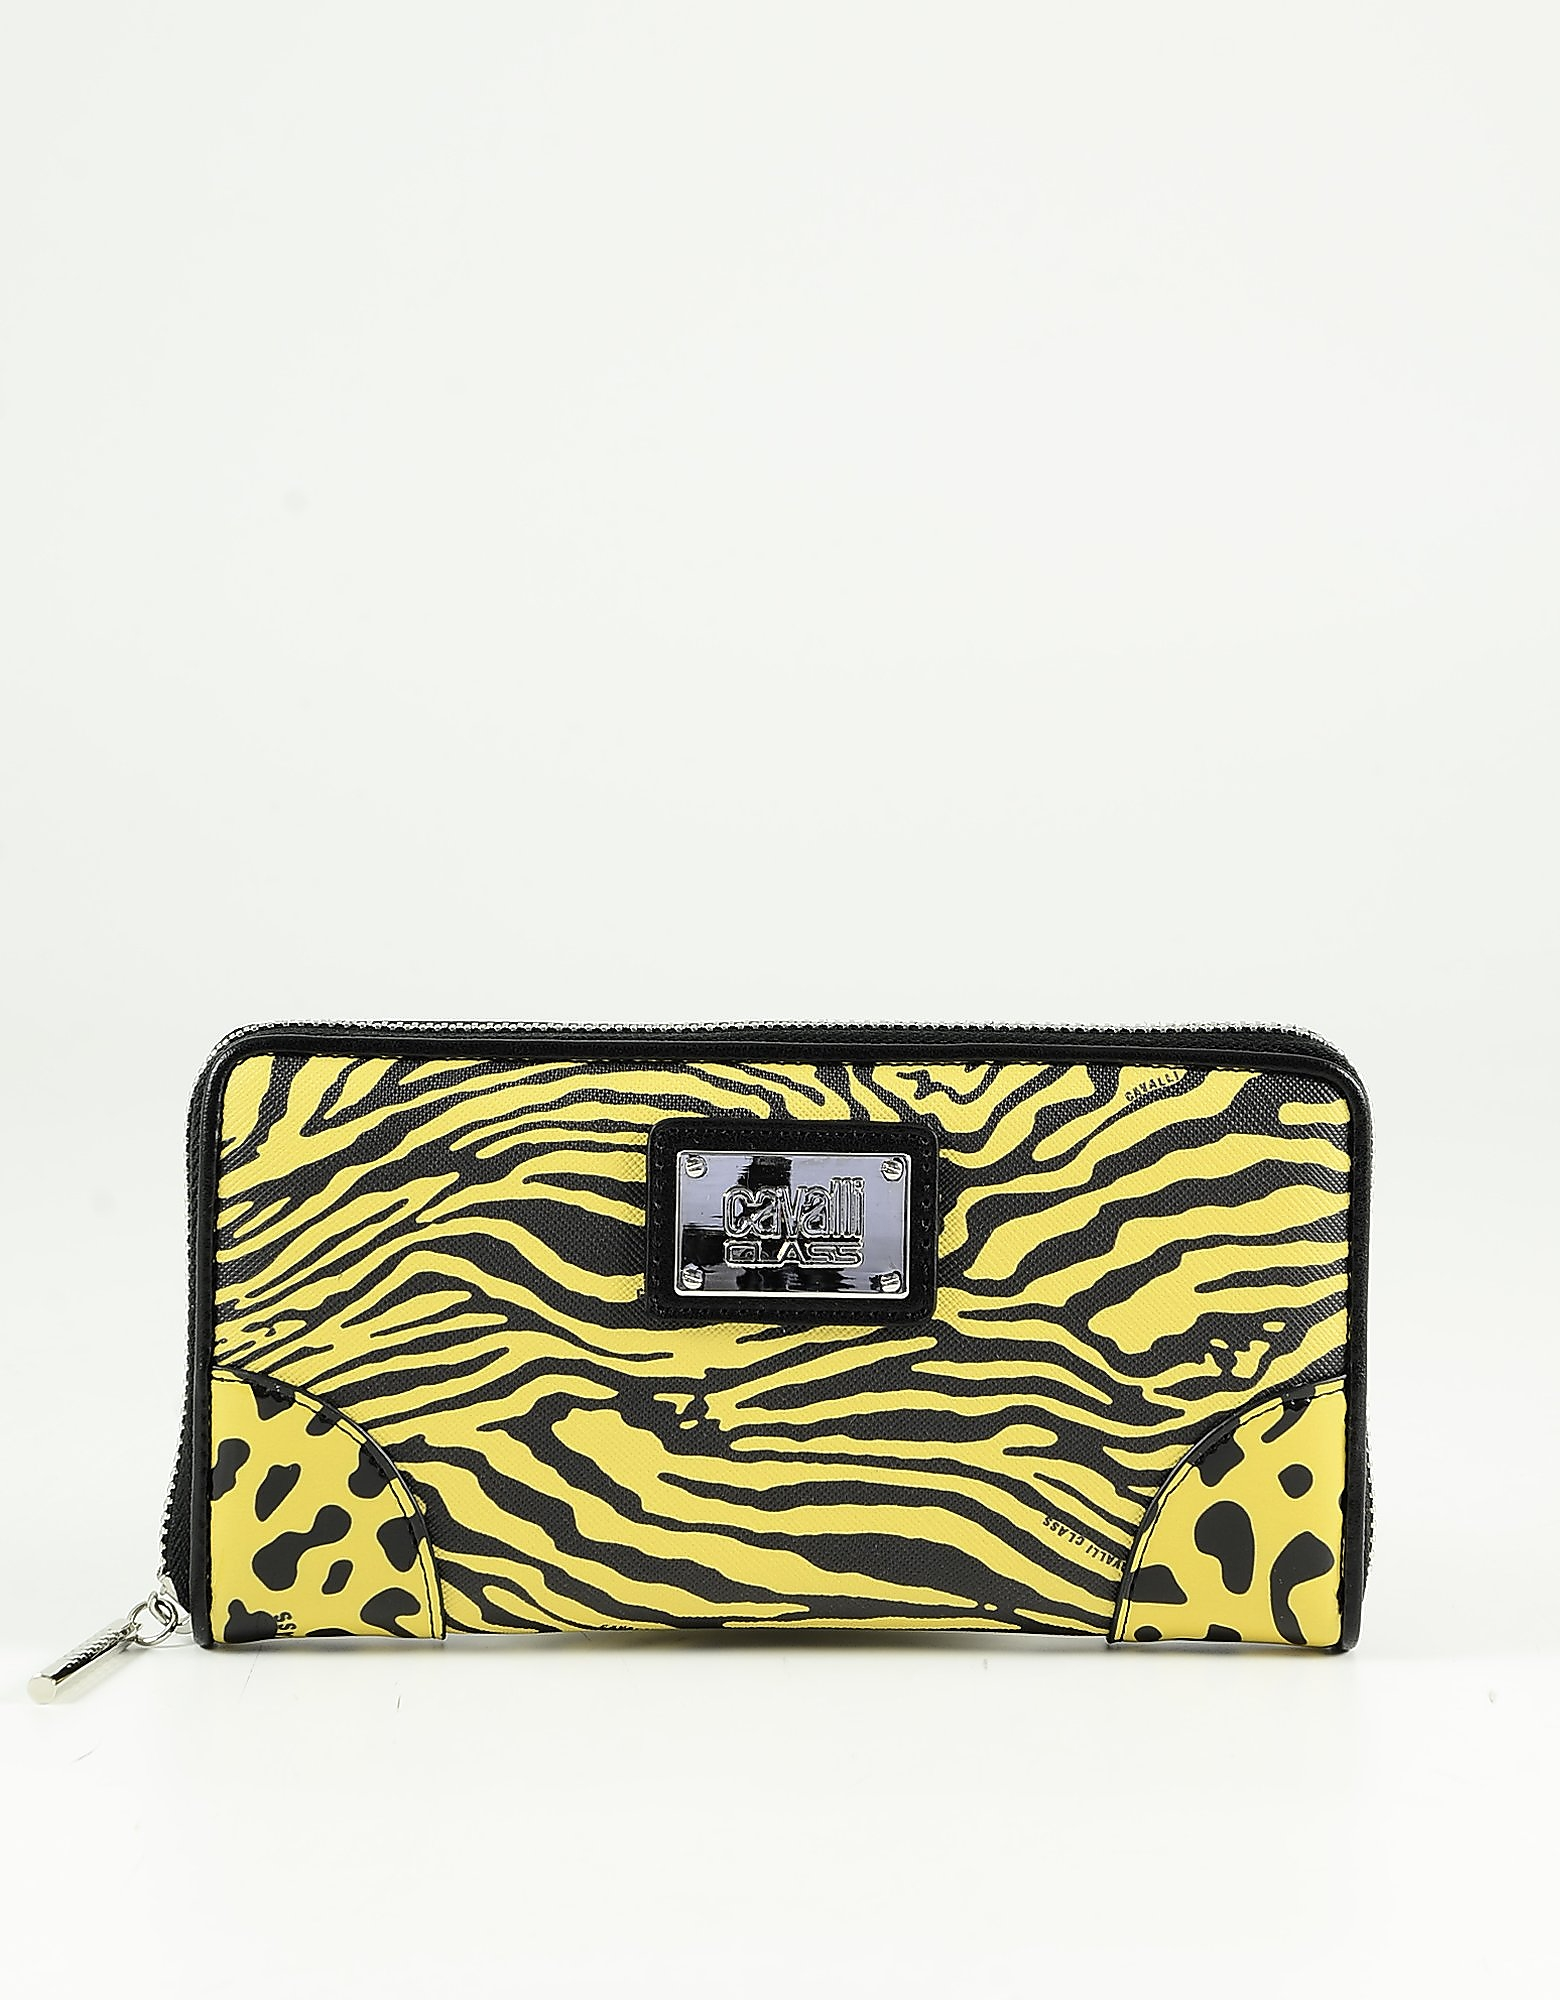 Class Roberto Cavalli Bright Yellow & Black Animal Printed Eco-leather Zip Around Women's Wallet